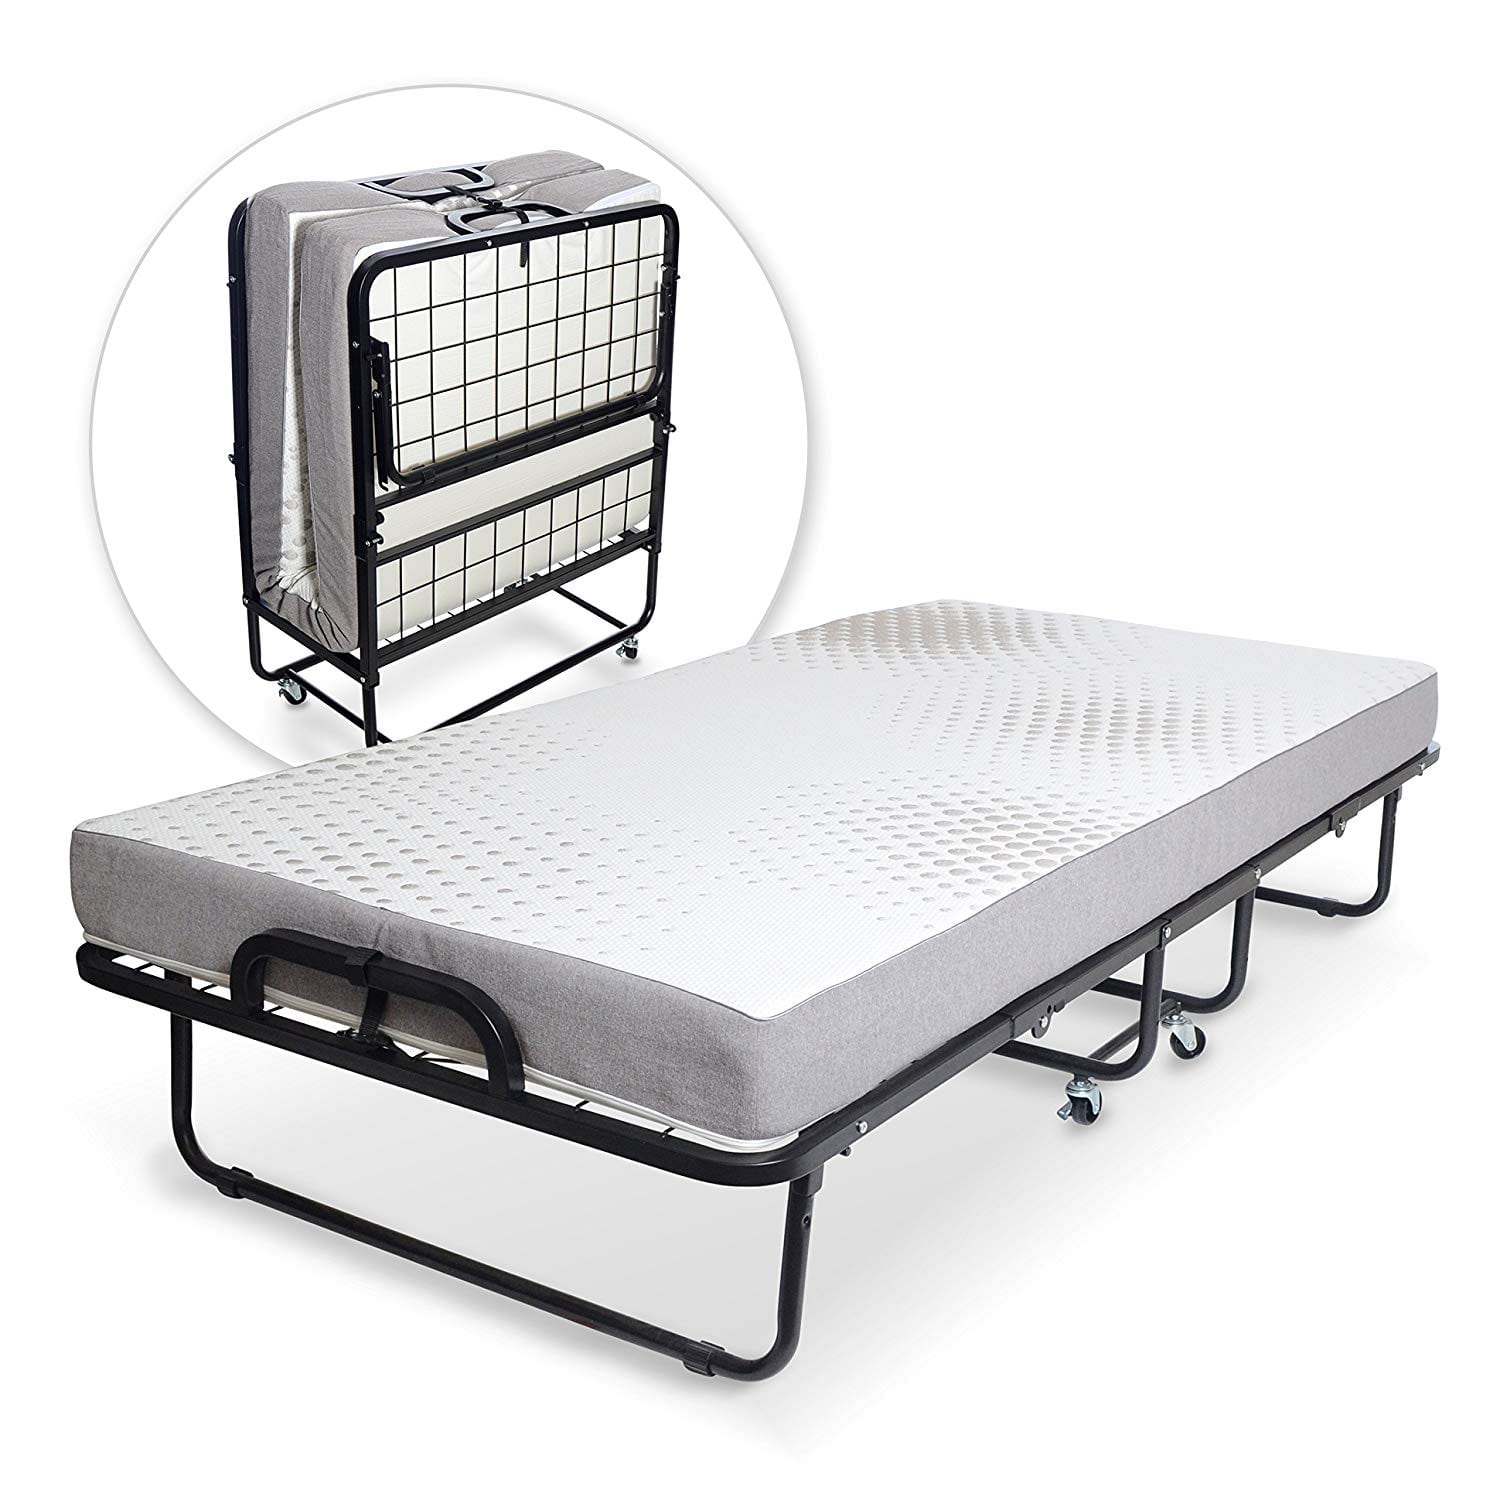 Milliard Diplomat Folding Bed Reviews by www.snoremagazine.com